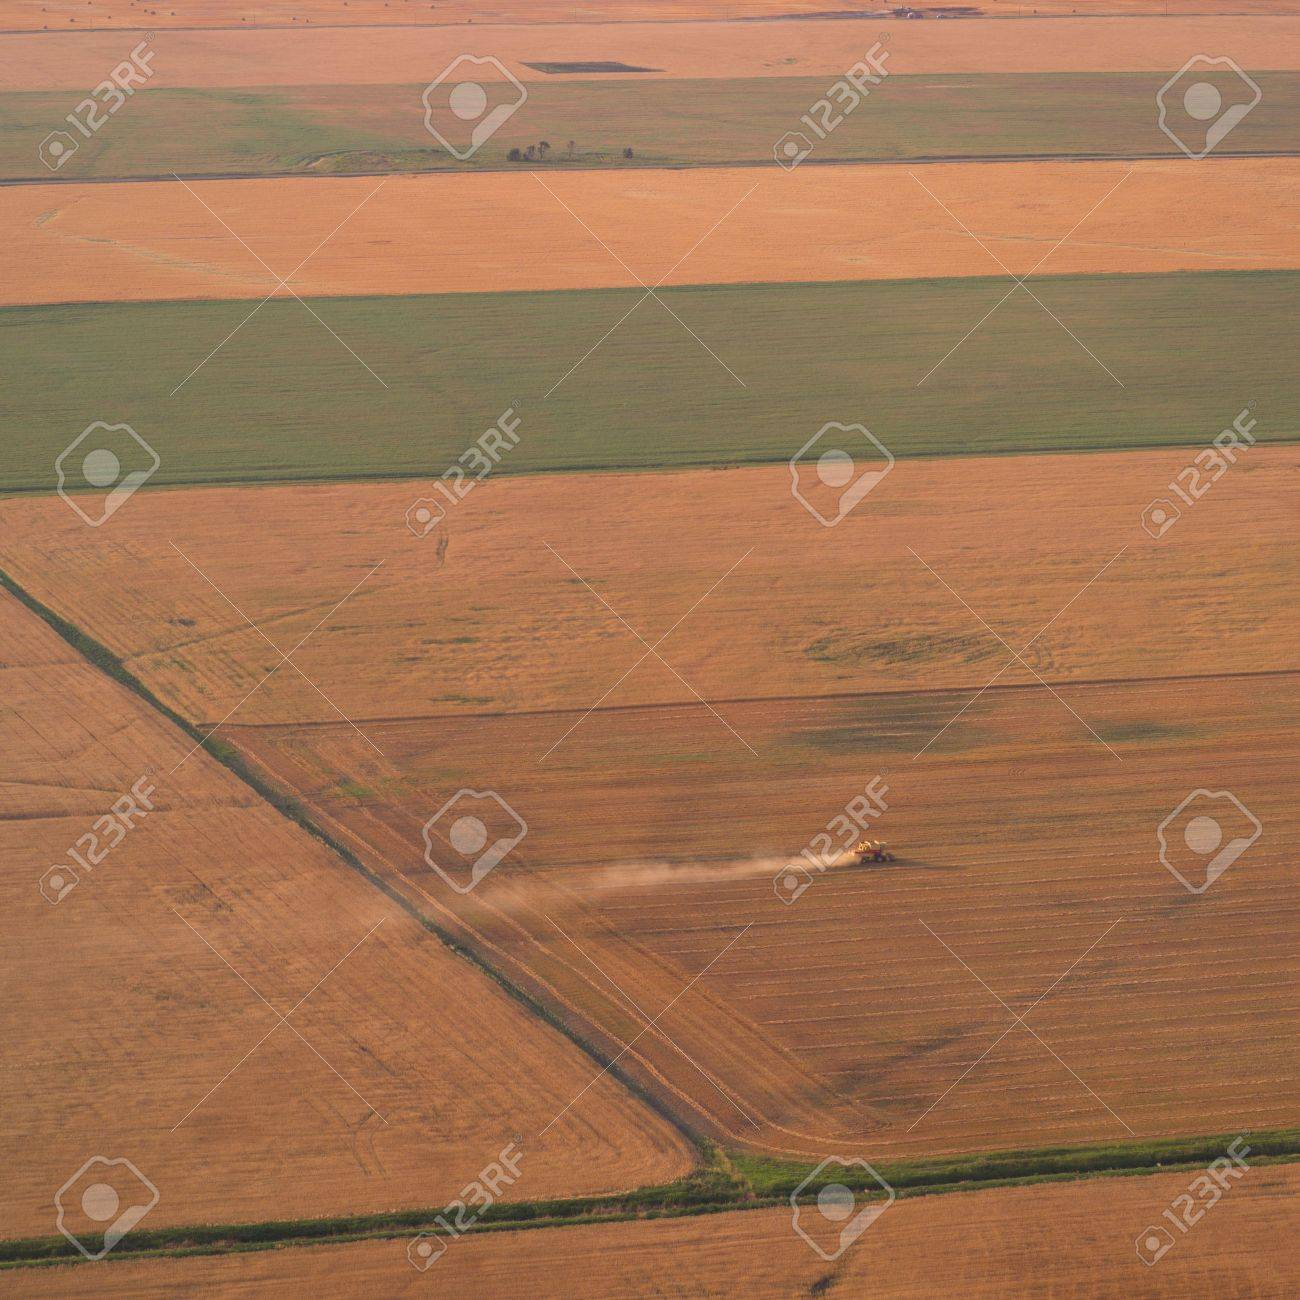 Canadian Prairies,Harvested wheat Stock Photo - 2348546